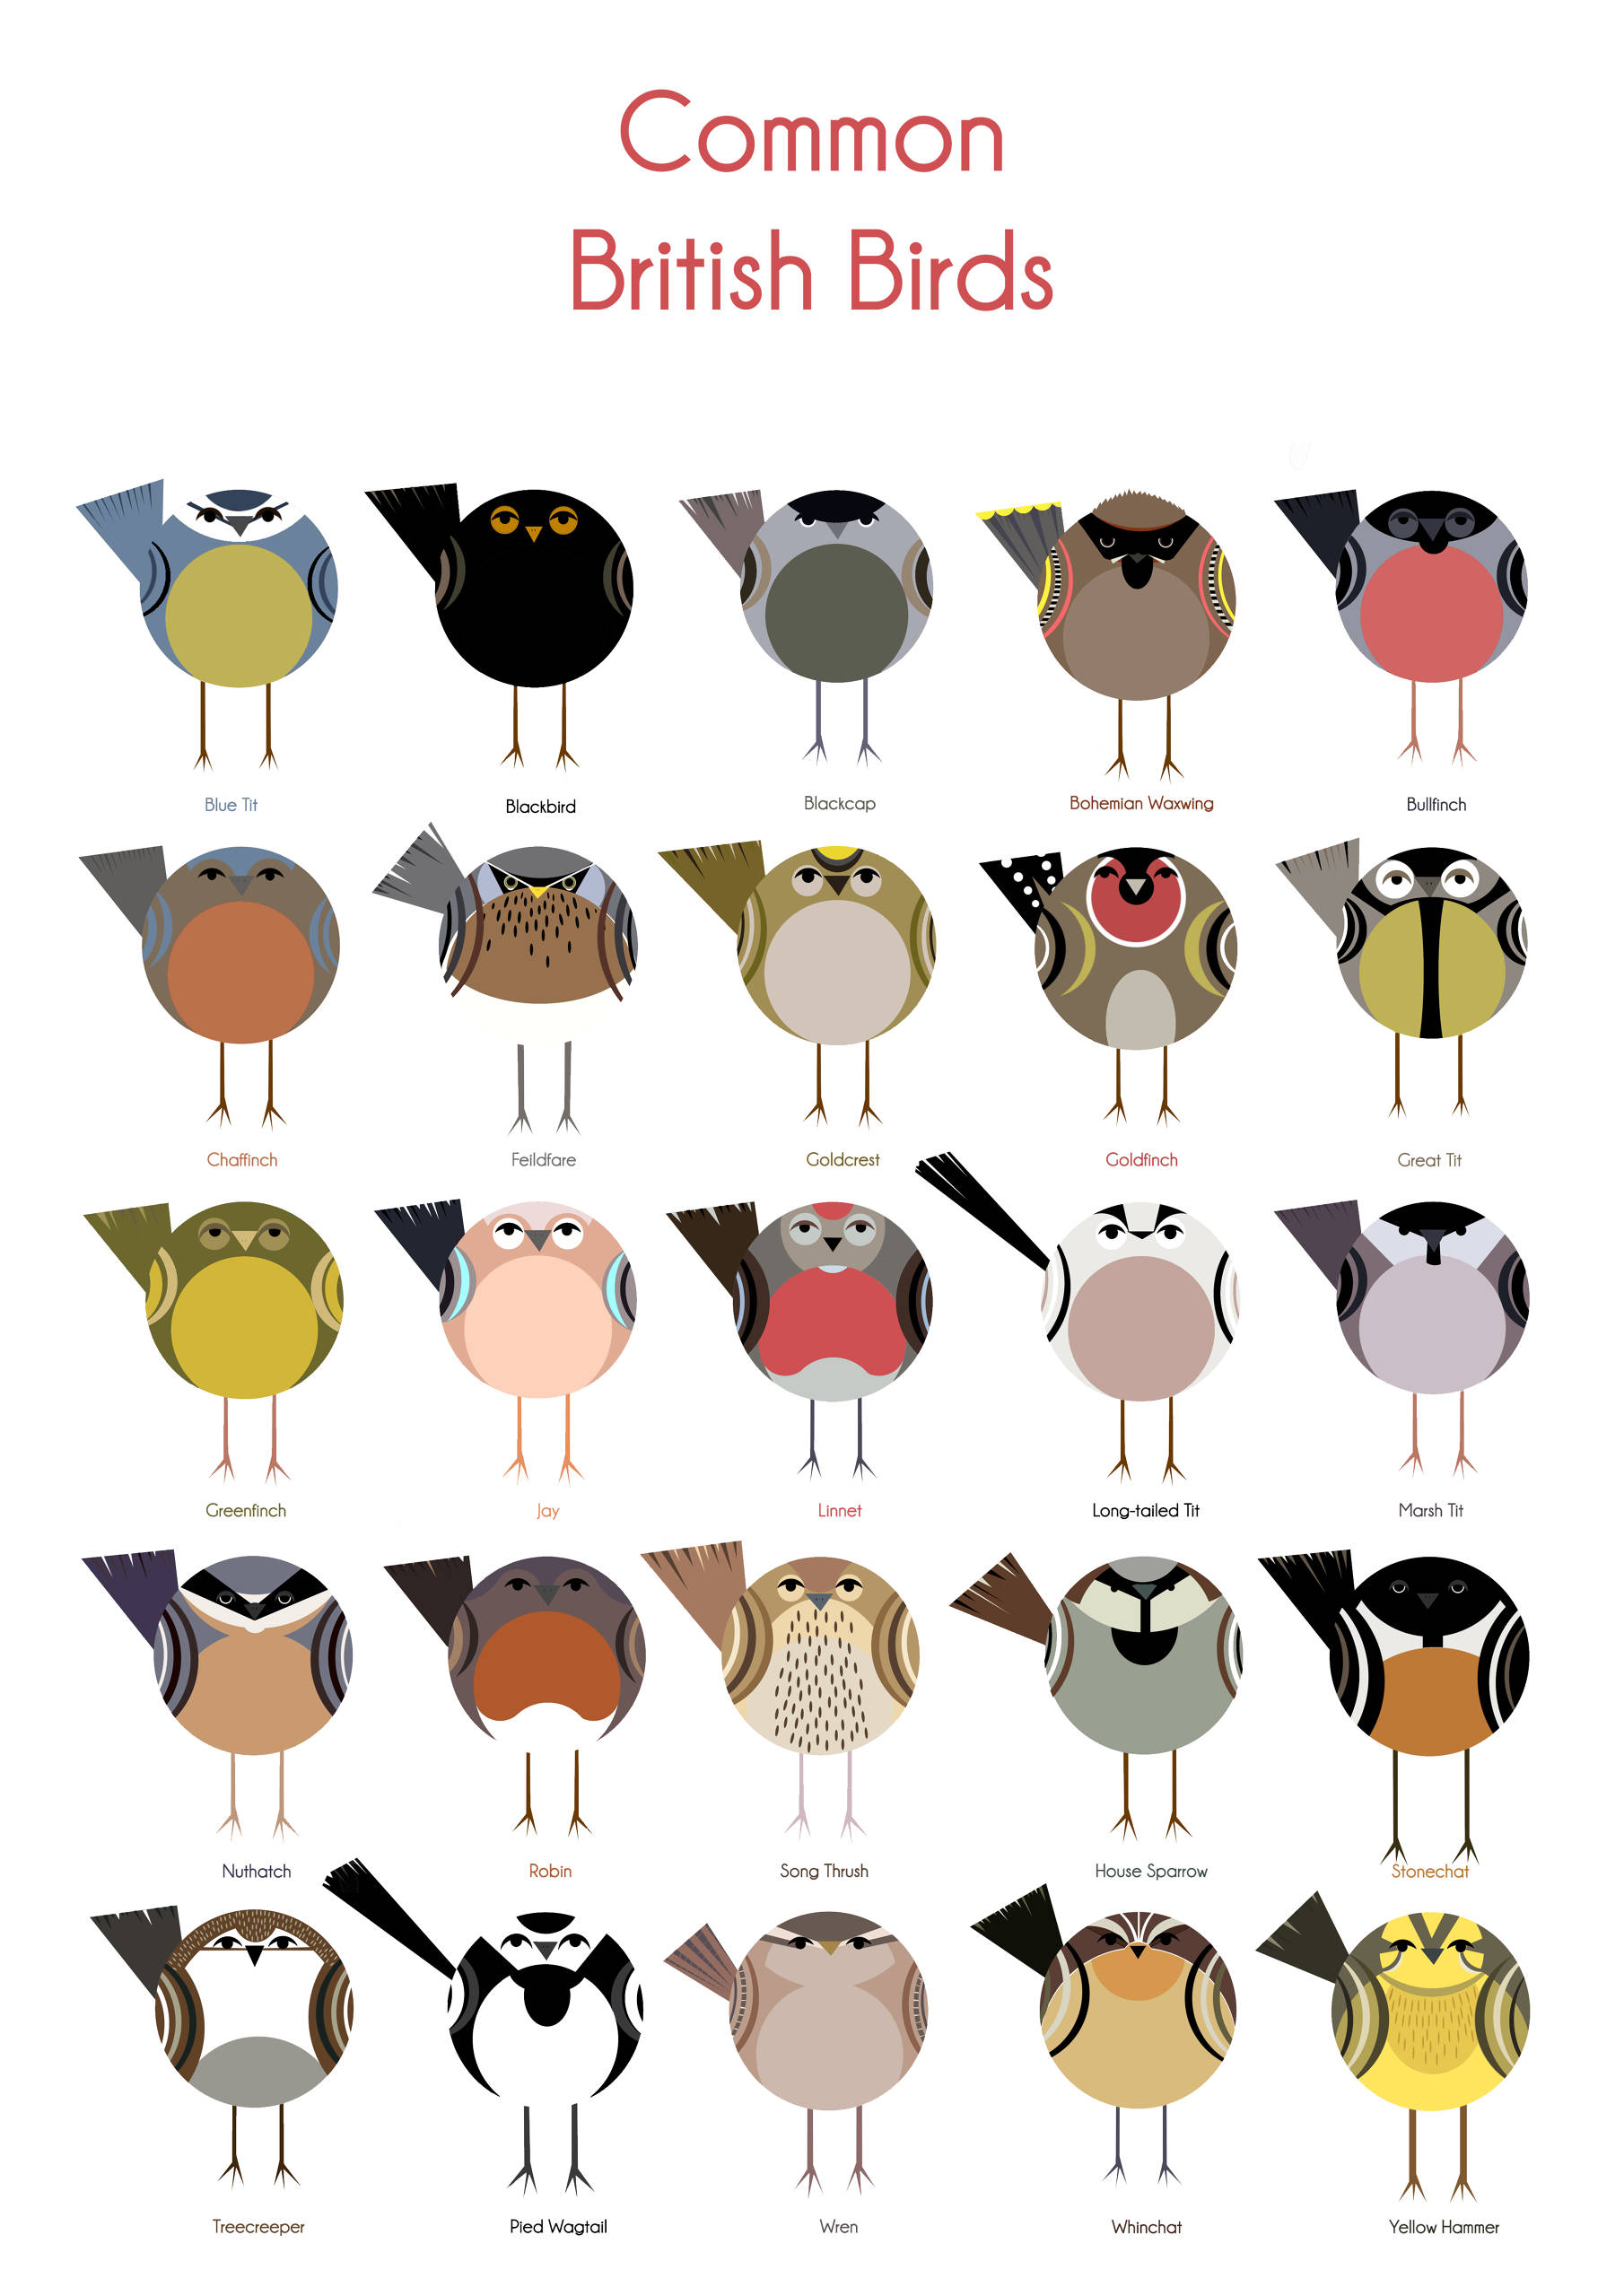 Common British Birds.